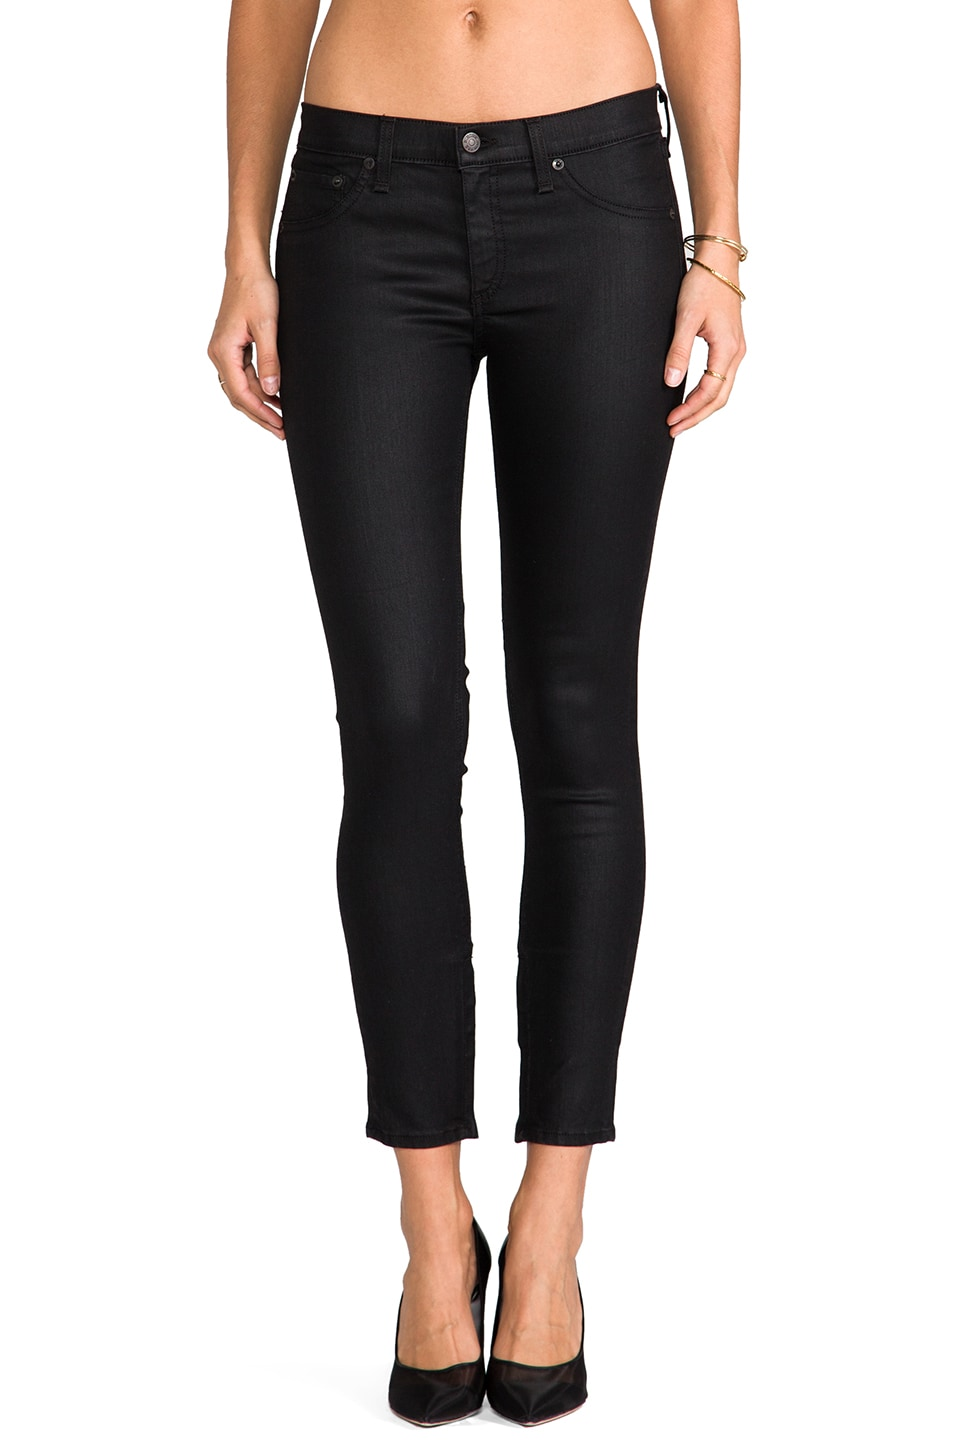 rag & bone/JEAN Zipper Capri Jean in Cotswald